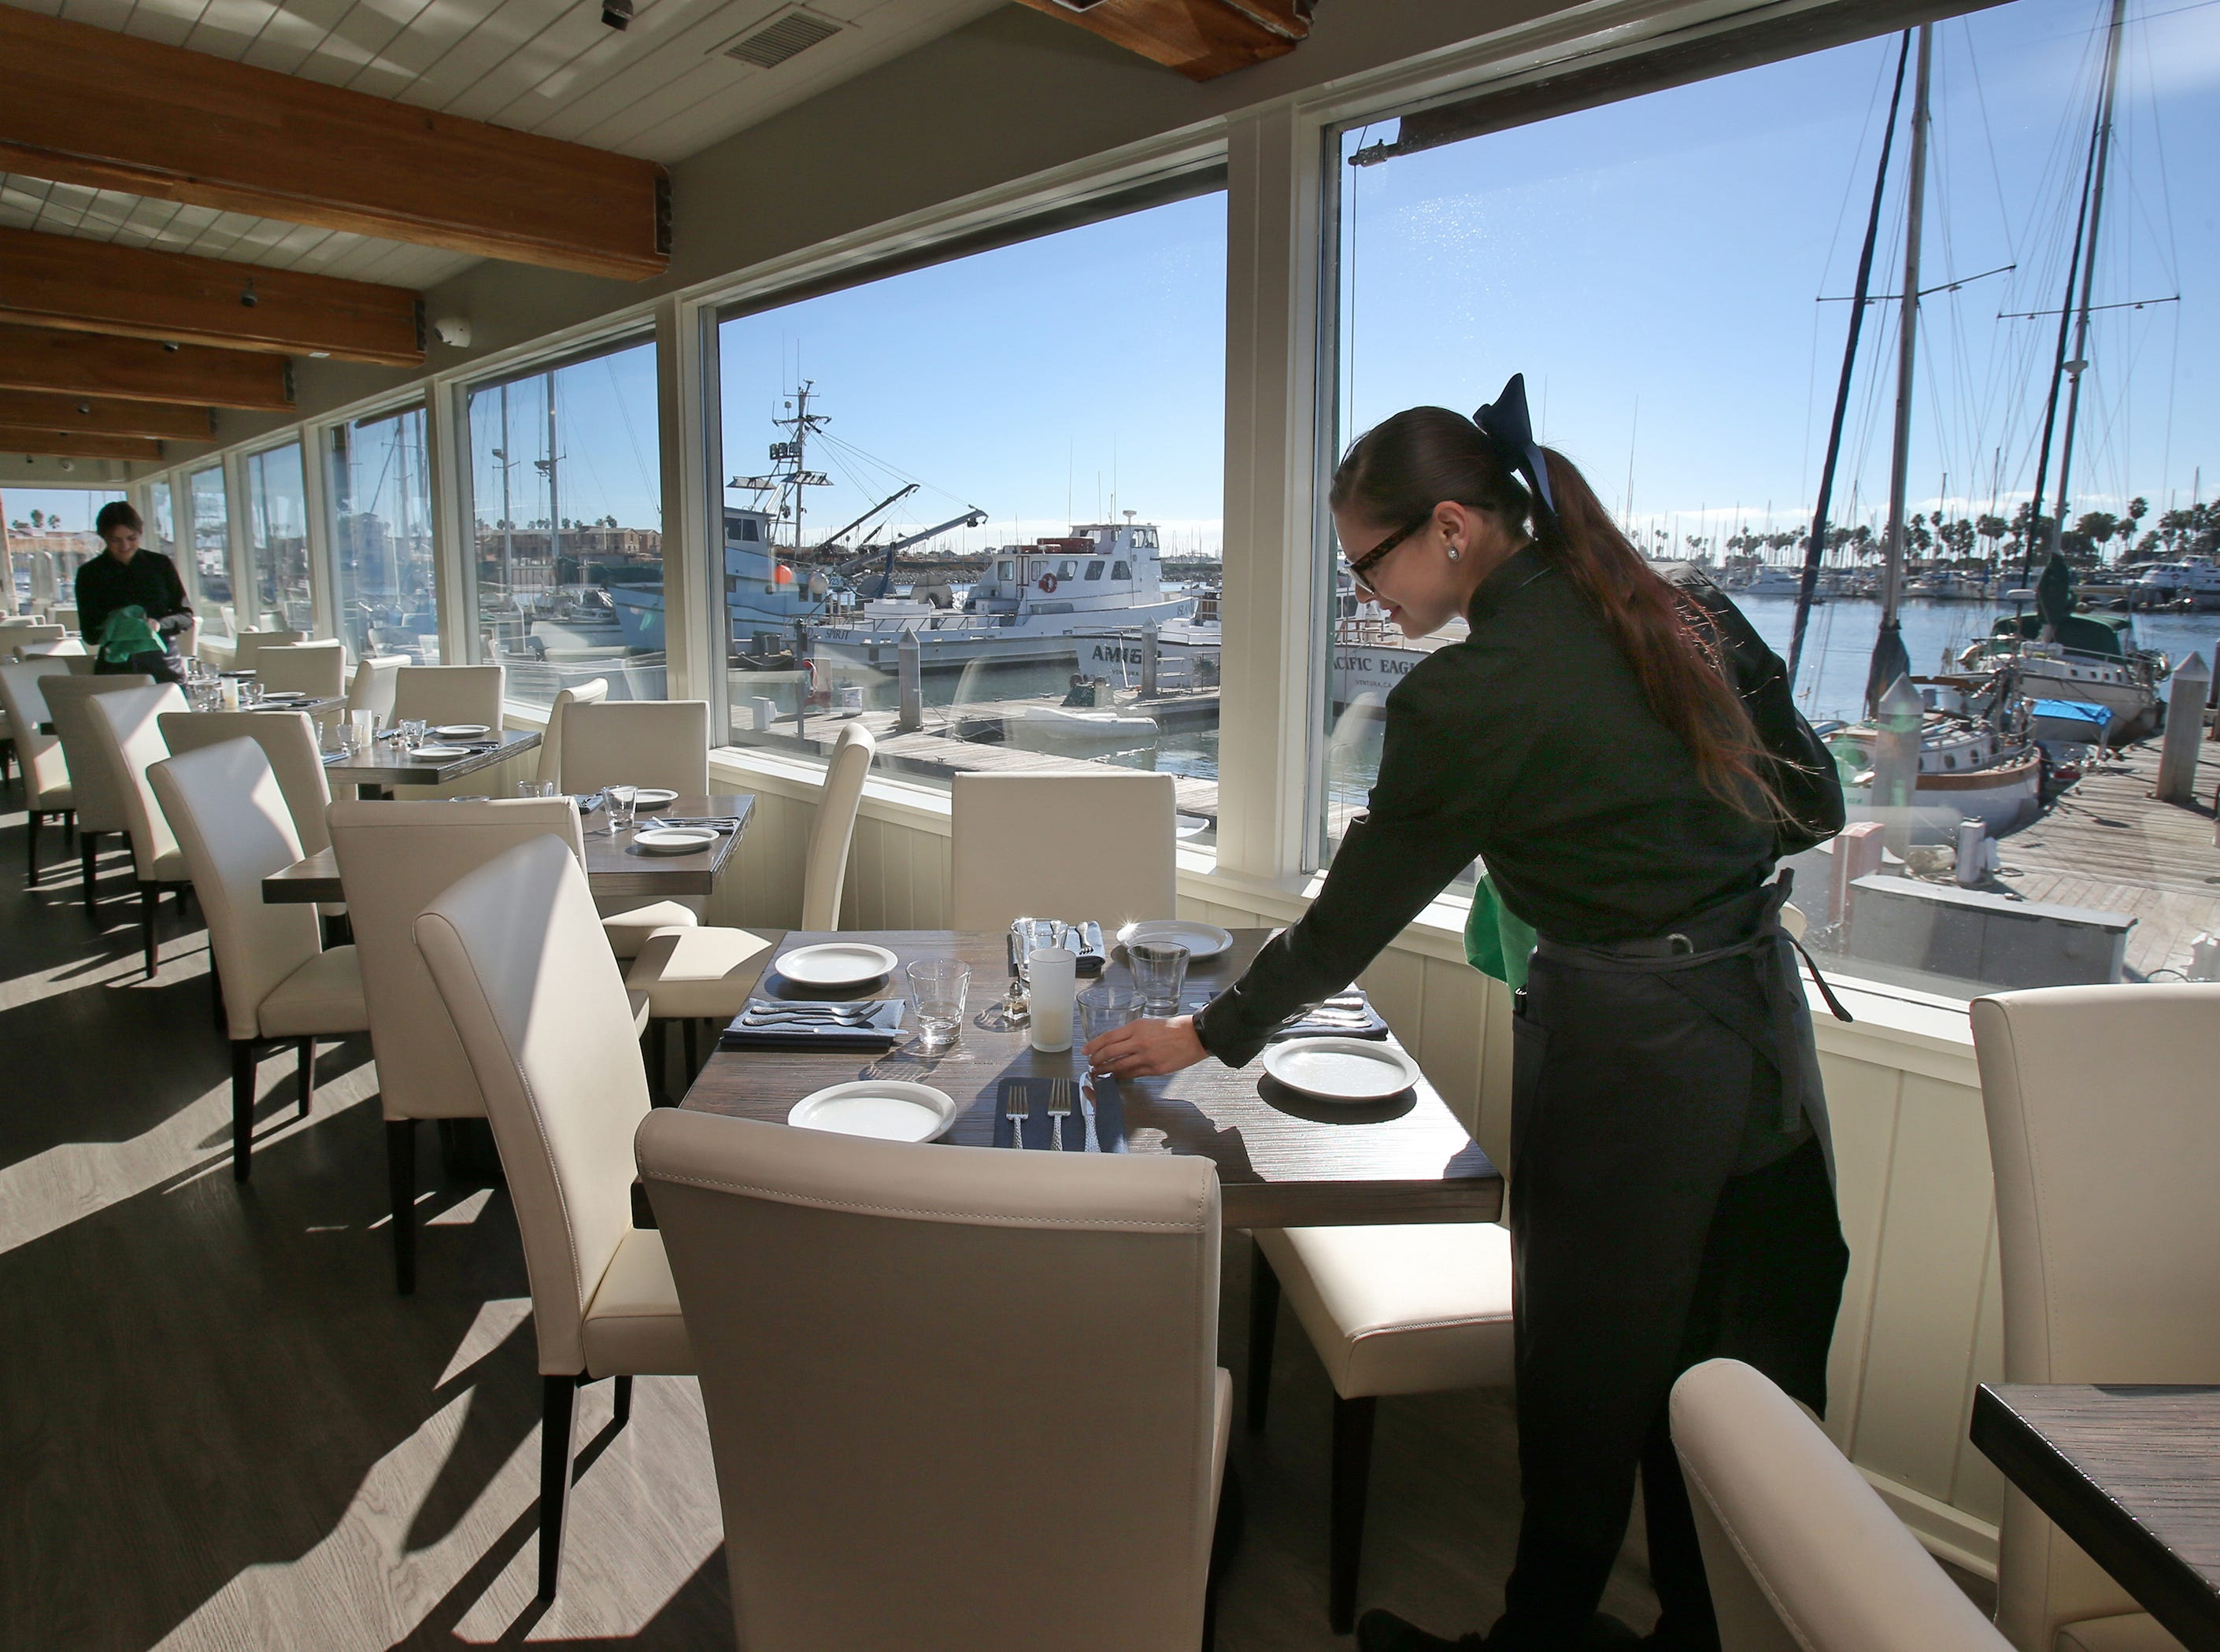 Water's Edge Restaurant and Bar's Hannah Fry, left, and Shawnna Rodriguez prepare the main dining area of the new Ventura Harbor restaurant.